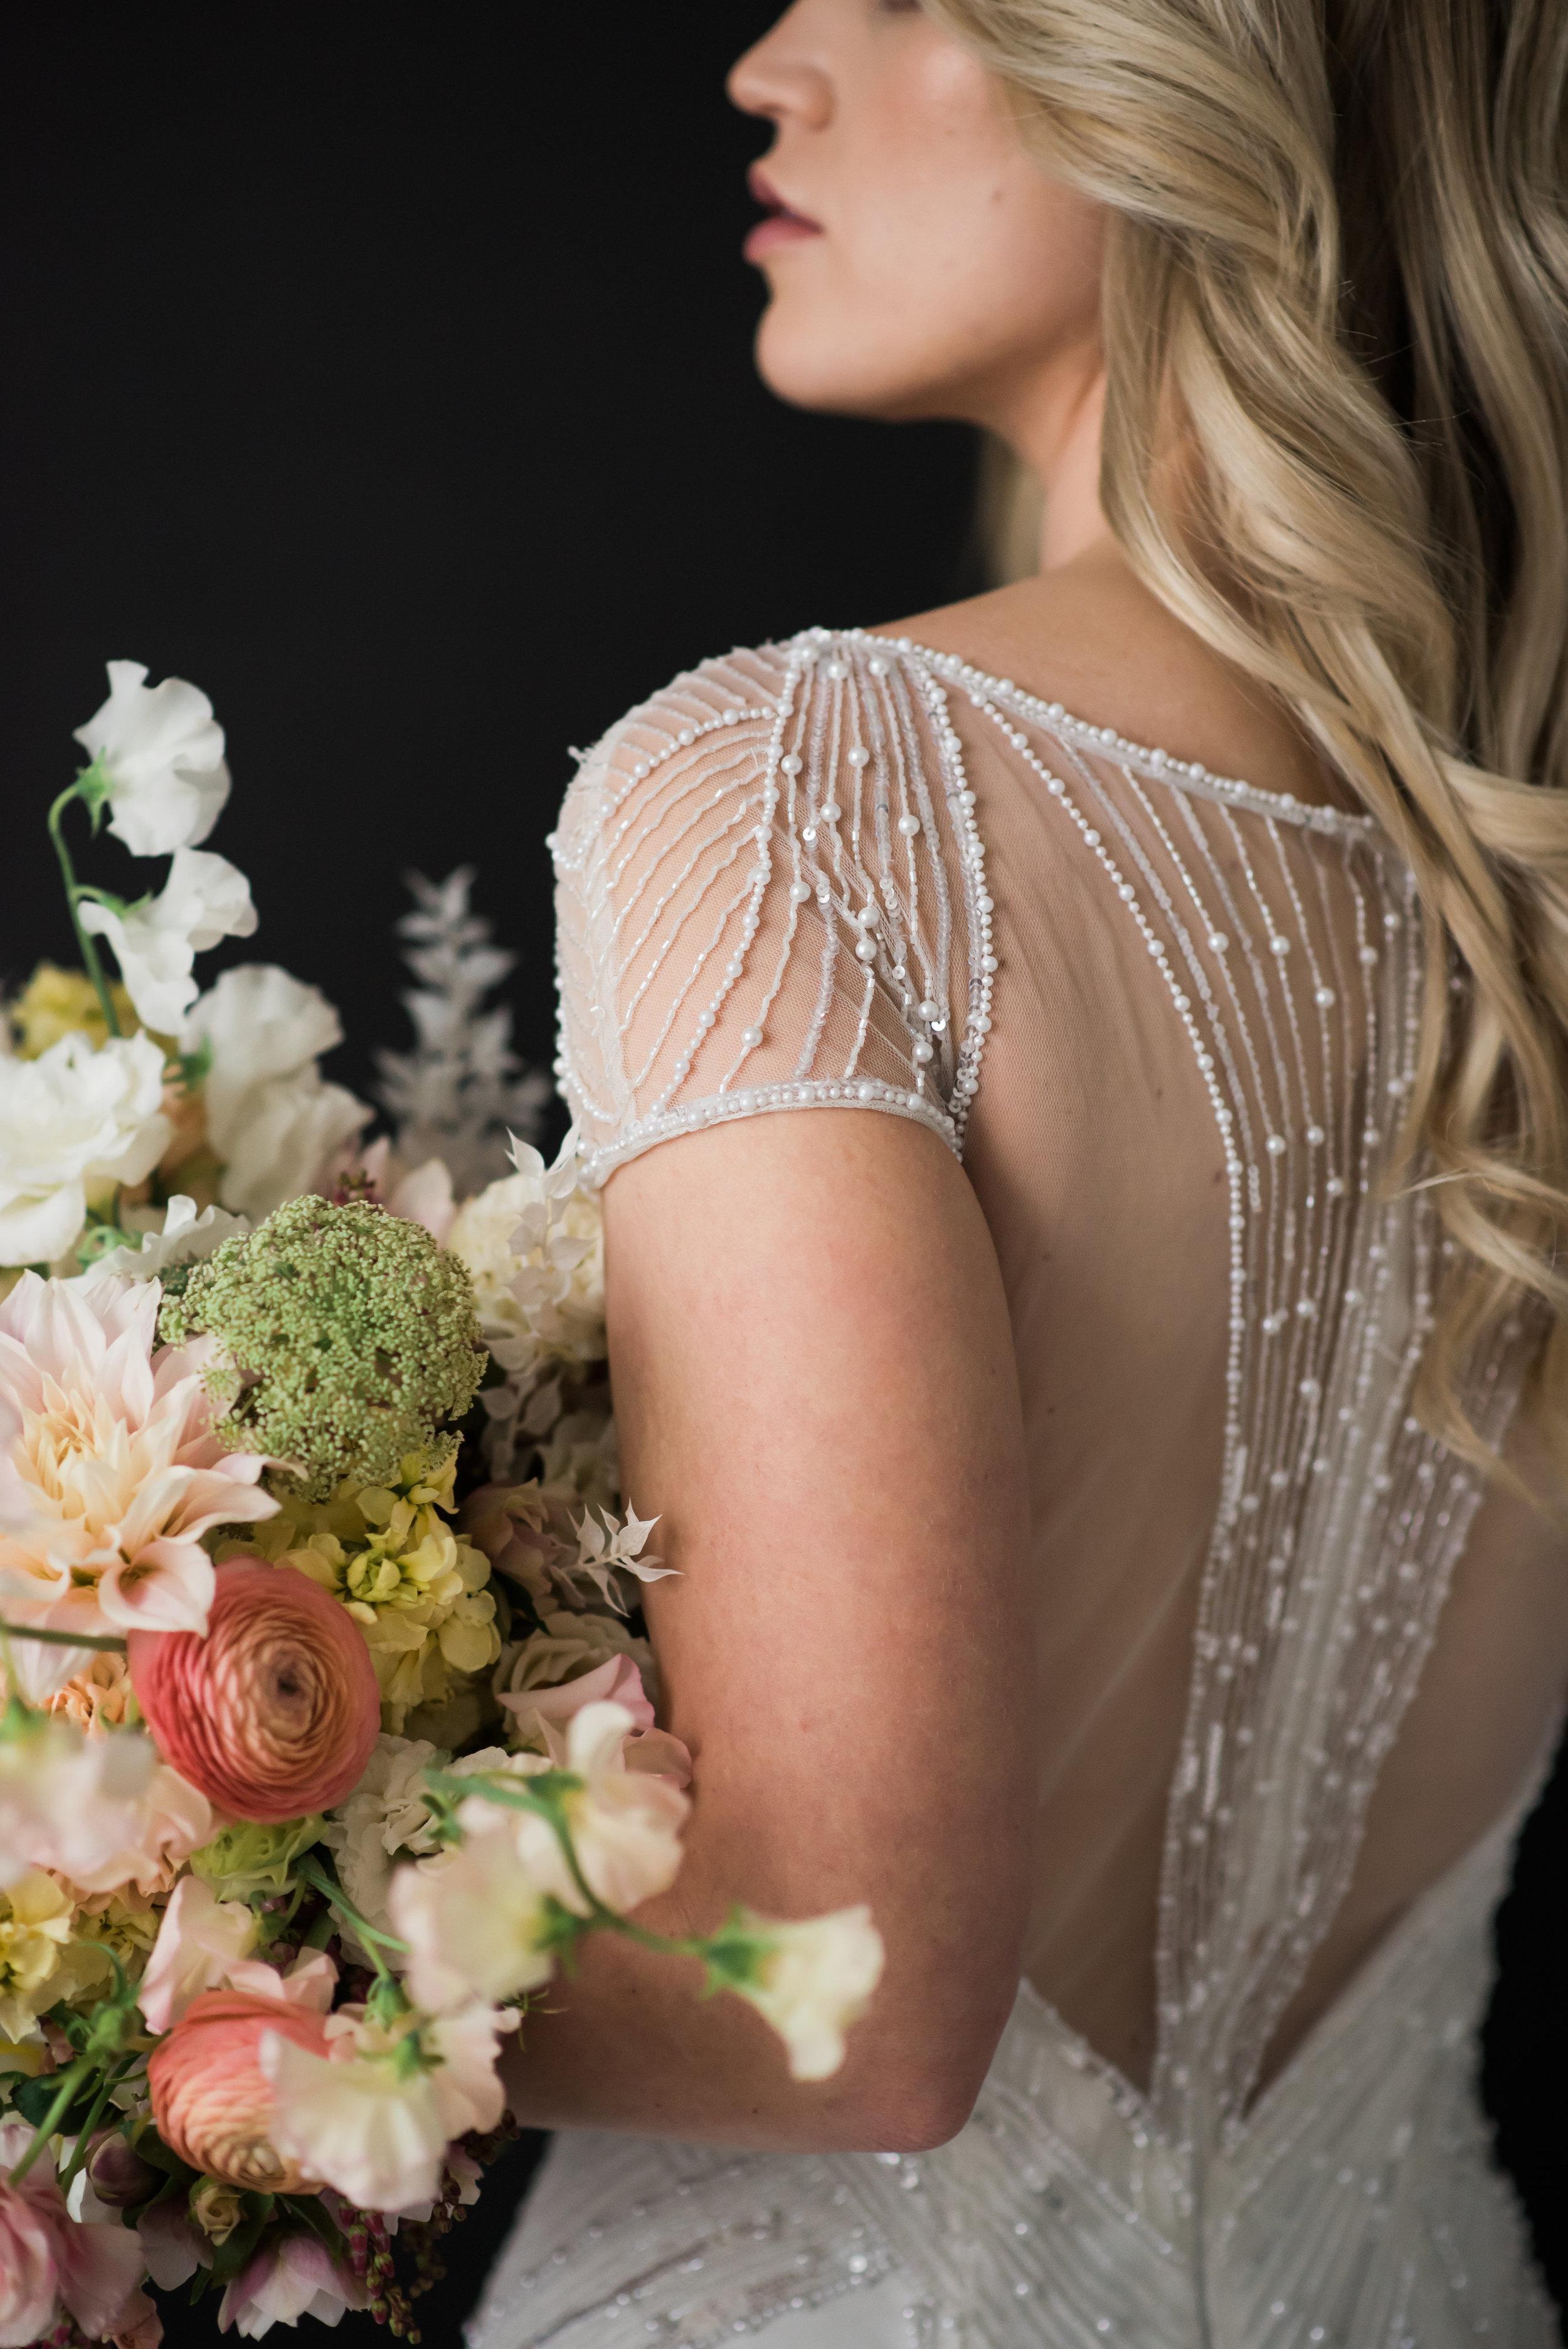 Your wedding dress should be as exceptional, stylish, and romantic as you are.……………………………………………………..With that in mind, we have hand picked Designers that exemplify our unique aesthetic, from traditional to modest, that range from $800 to $2700.……………………………………………………..Feel free to explore the Designers behind the dress below, and see more of their style.…………………………………………………….See more updates, styling, and behind the scenes pictures on our instagram: @thebridesshop. -